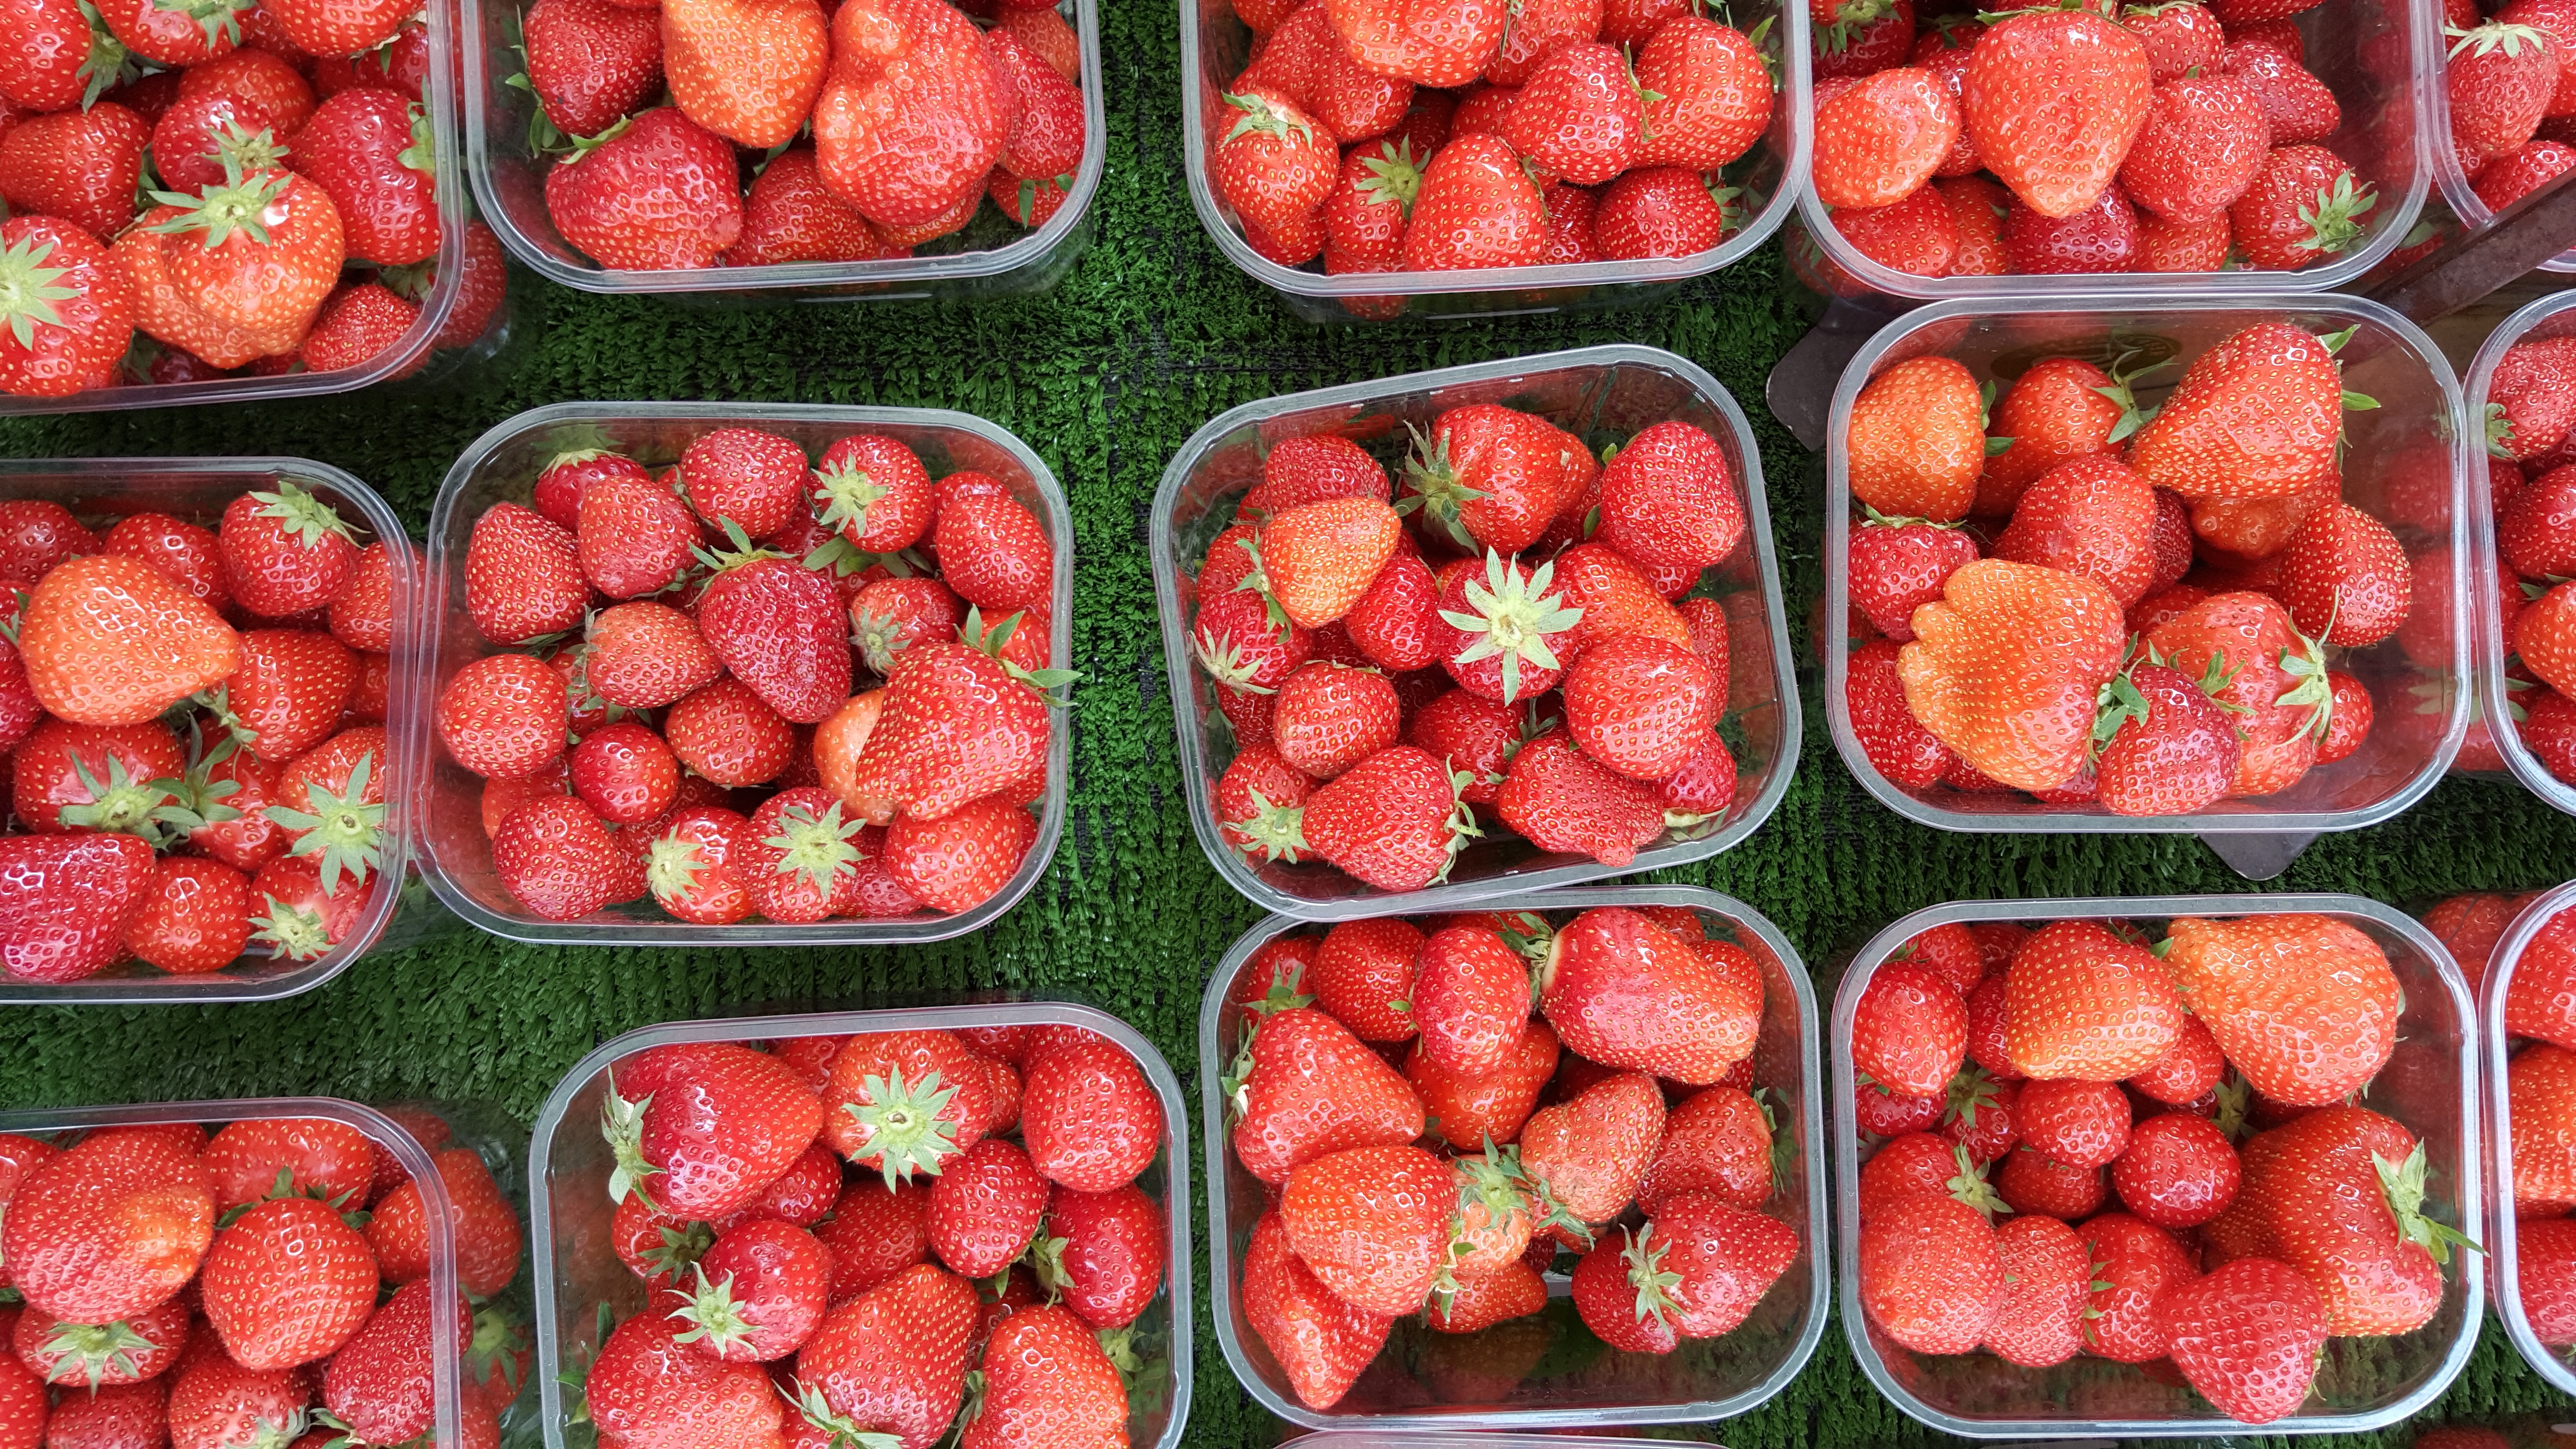 Baskets of fresh red strawberries at a produce market